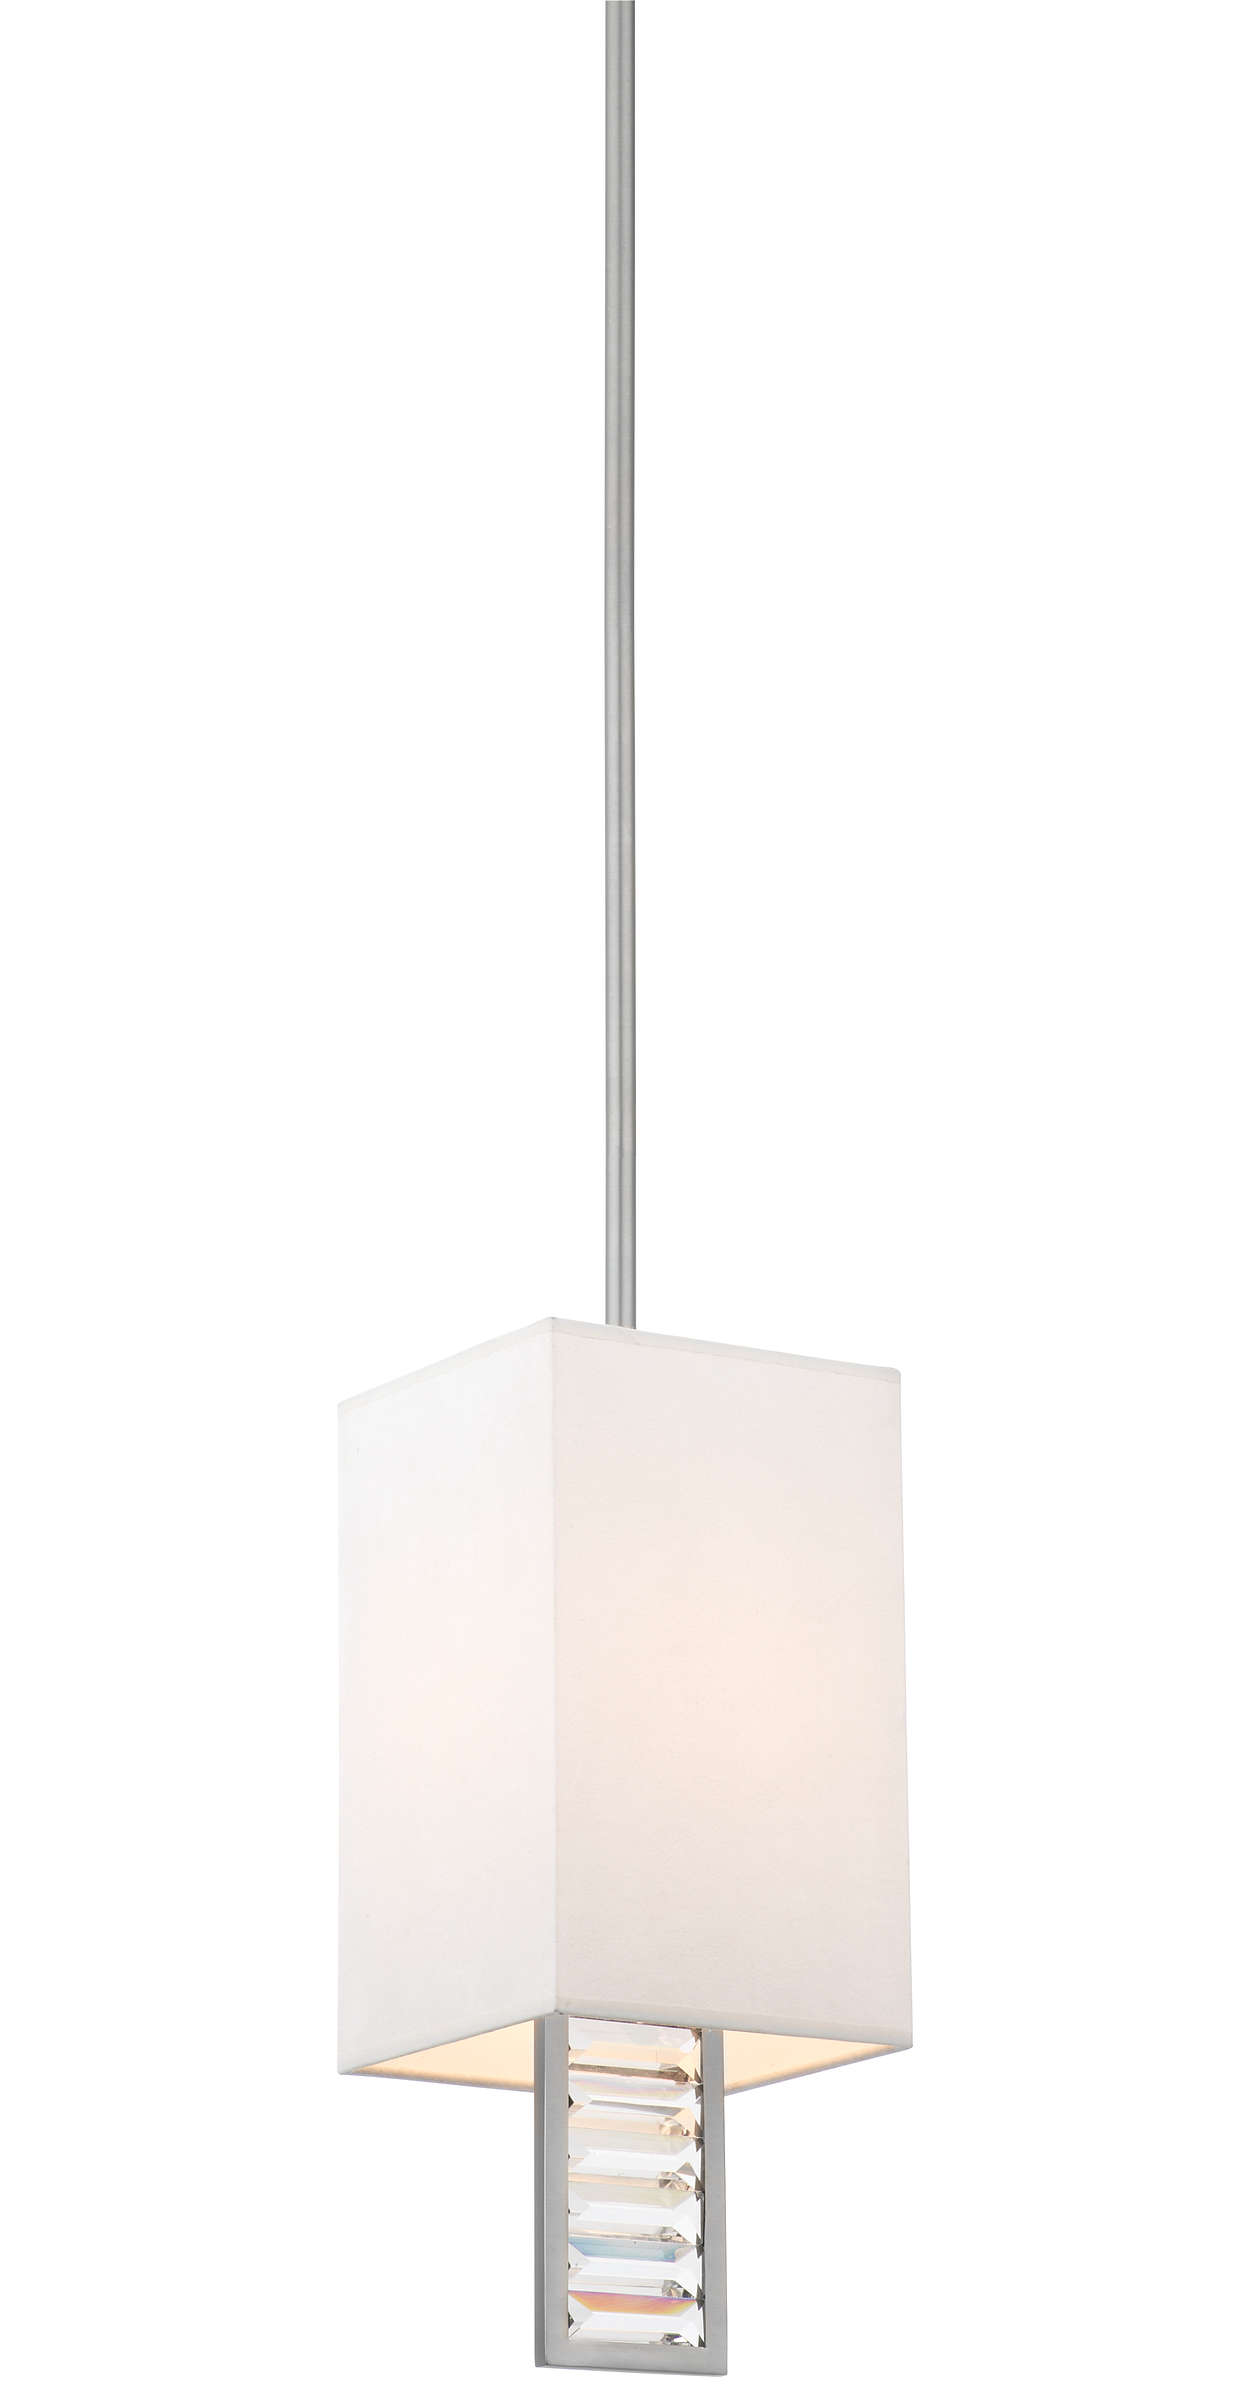 Zsa Zsa 1-light Pendant in Brushed Nickel finish